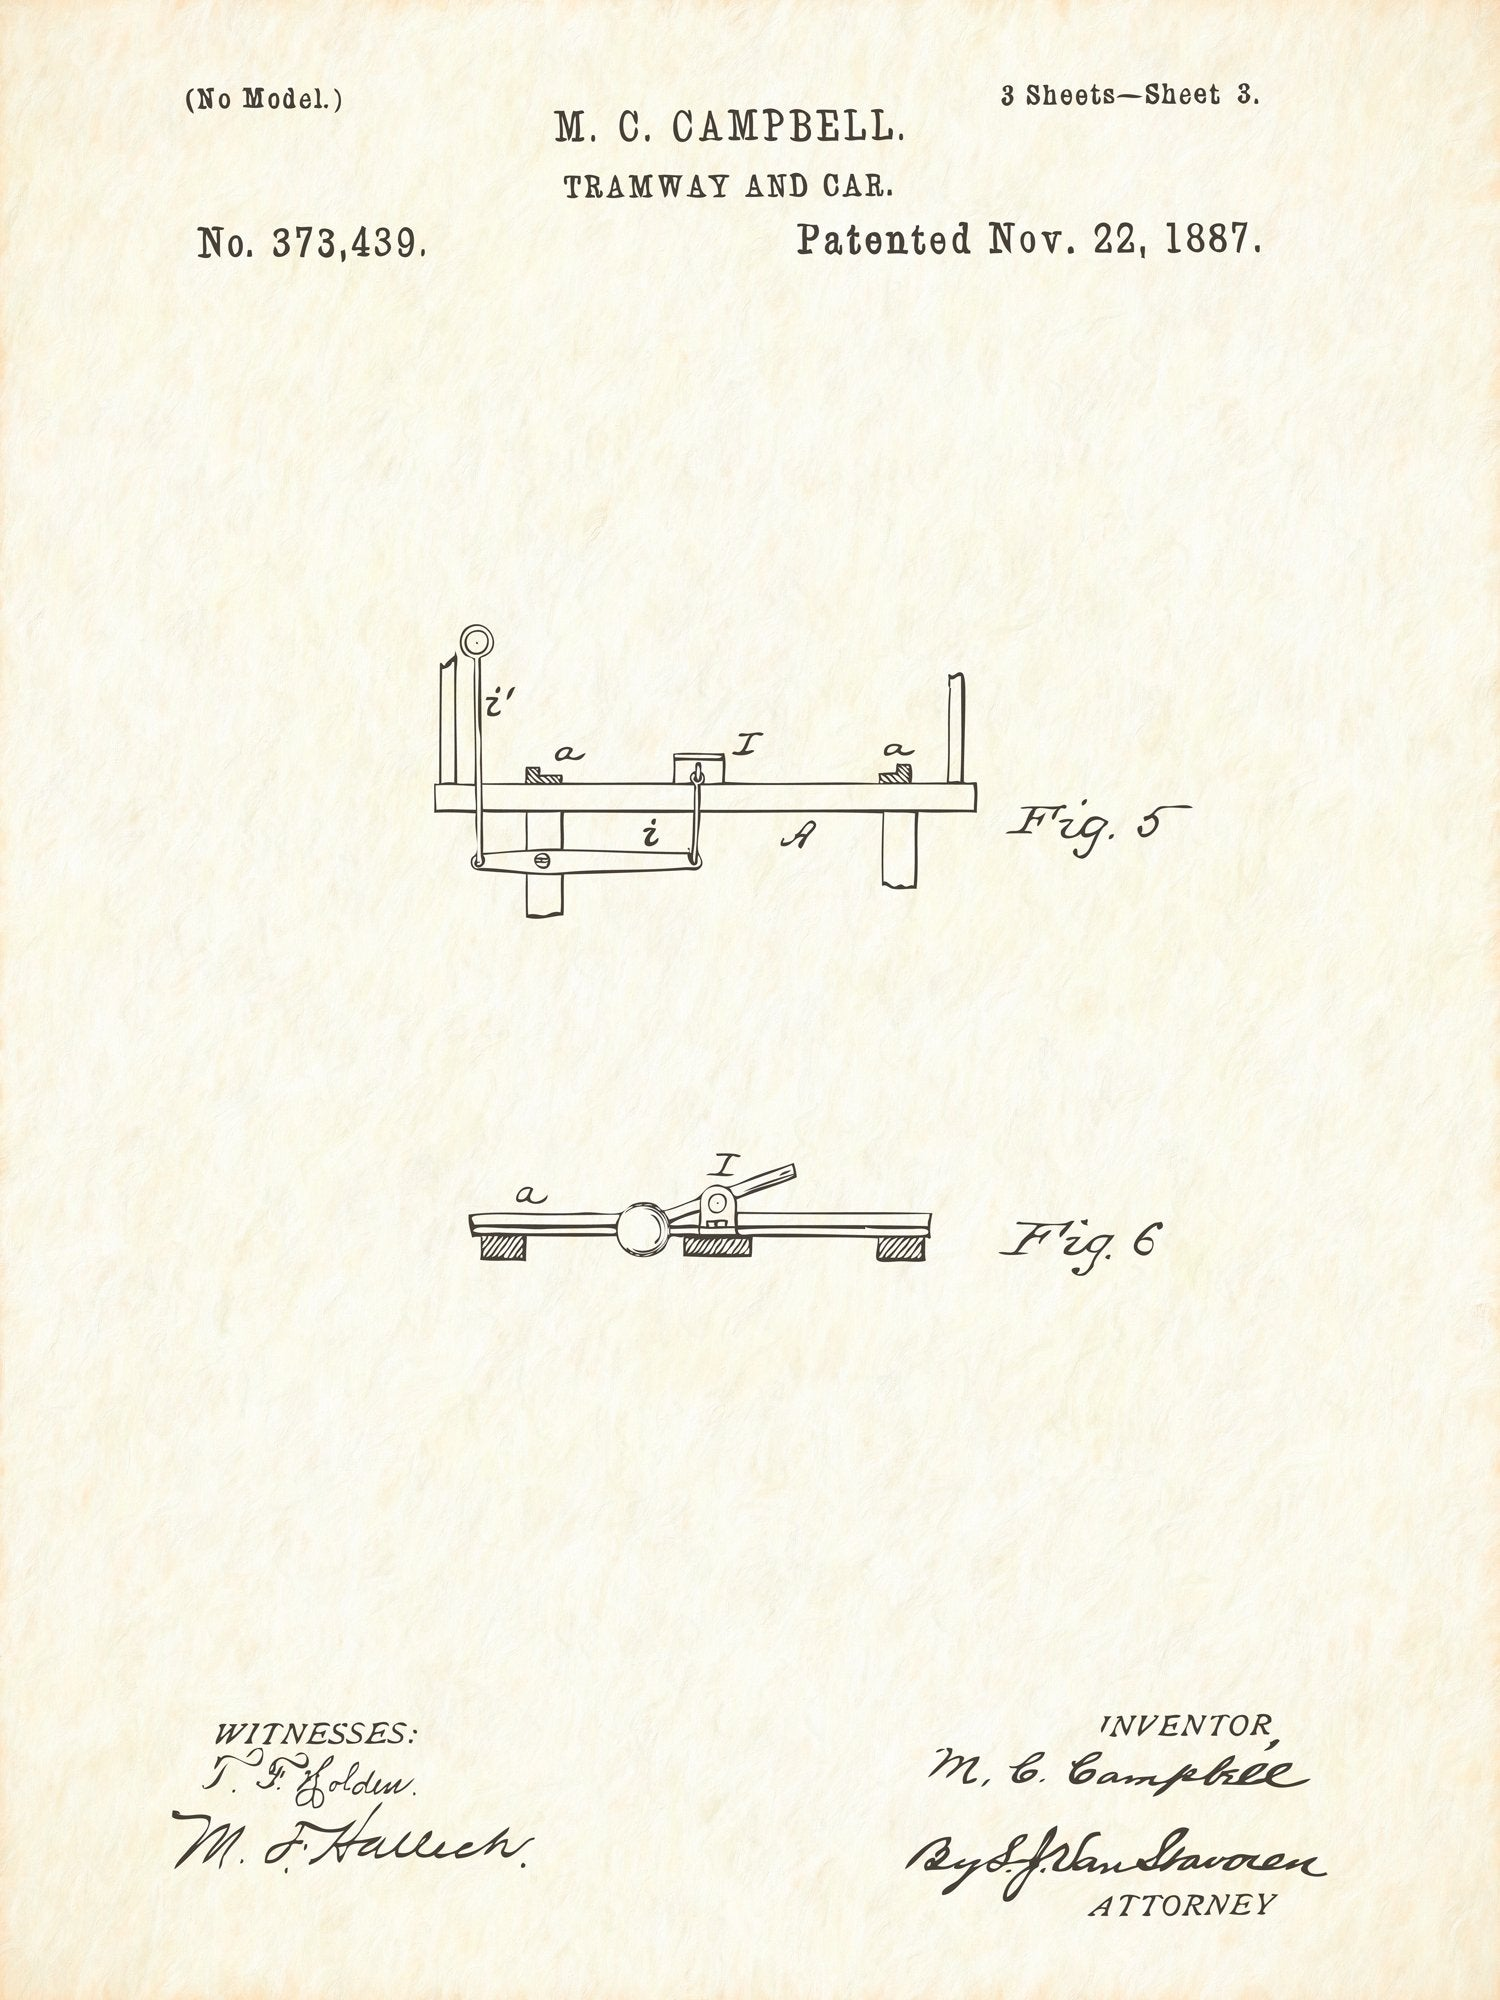 U.S. Patent No. 373439-3 Tramway and Car Reworked, Series 1